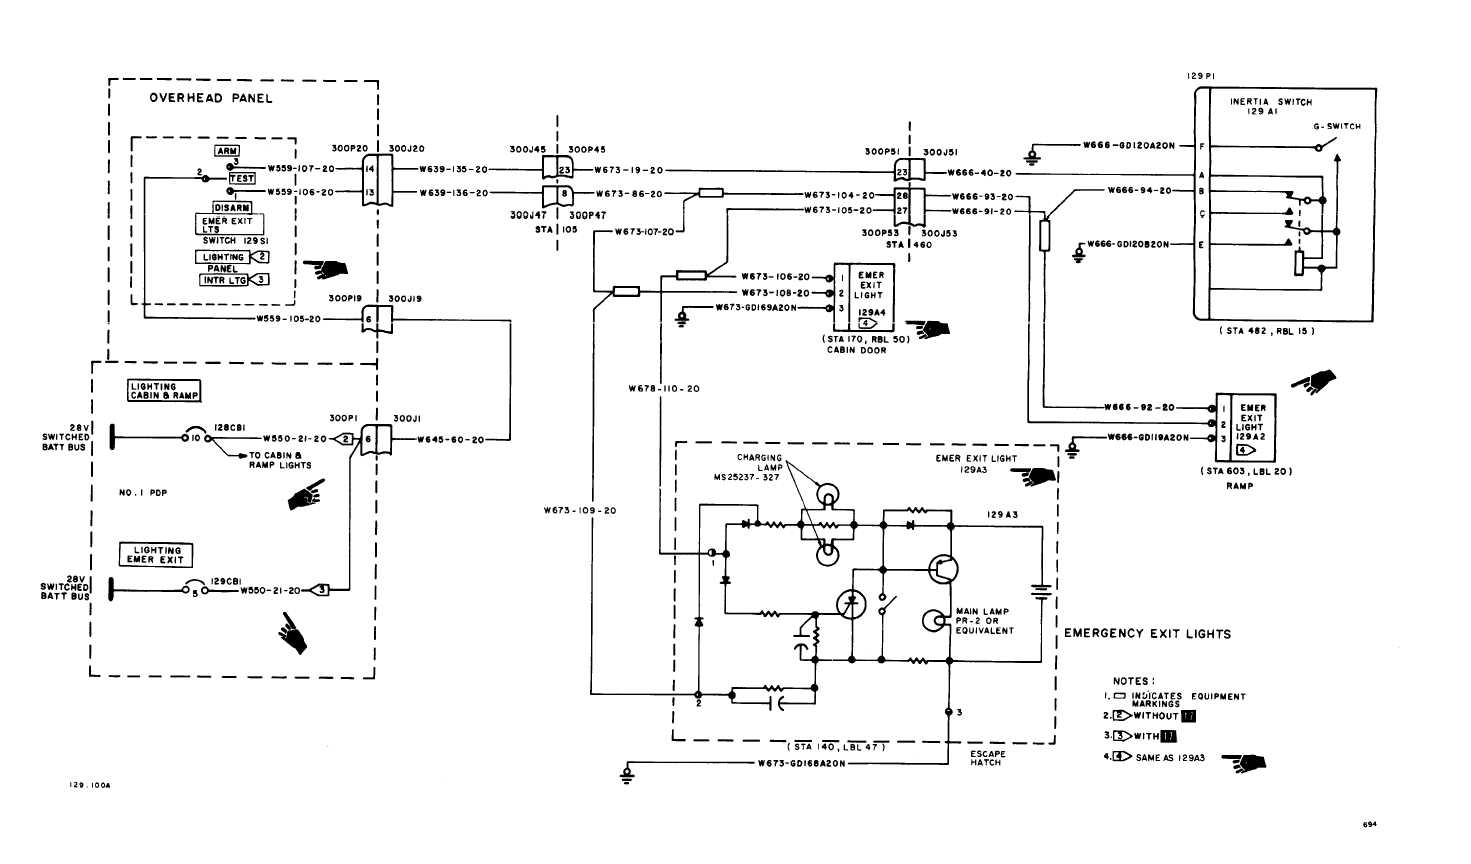 exit light wiring diagram Collection-Emergency Exit Lights Wiring Diagram In Lighting To Light 16-q